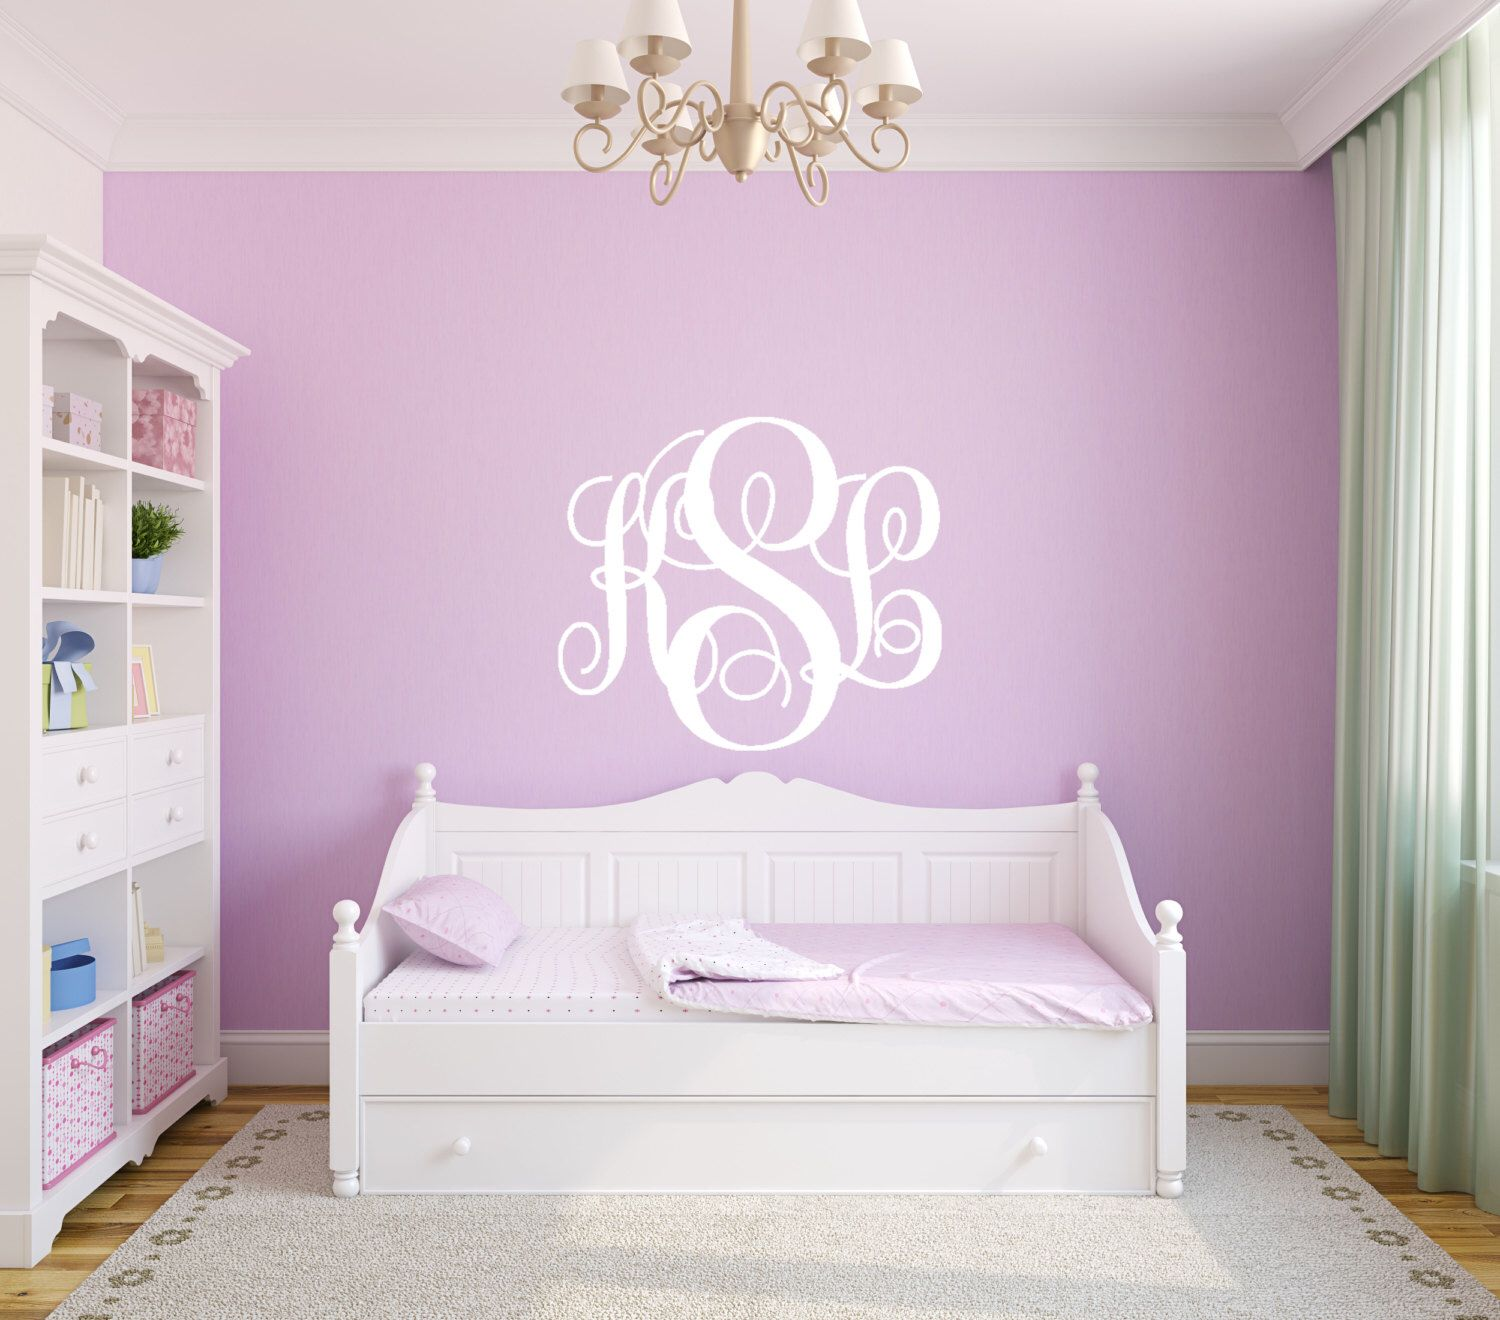 Vine Monogram Wall Decal Room Wall Decor Vinyl Decal Sticker - Custom made vinyl wall decals